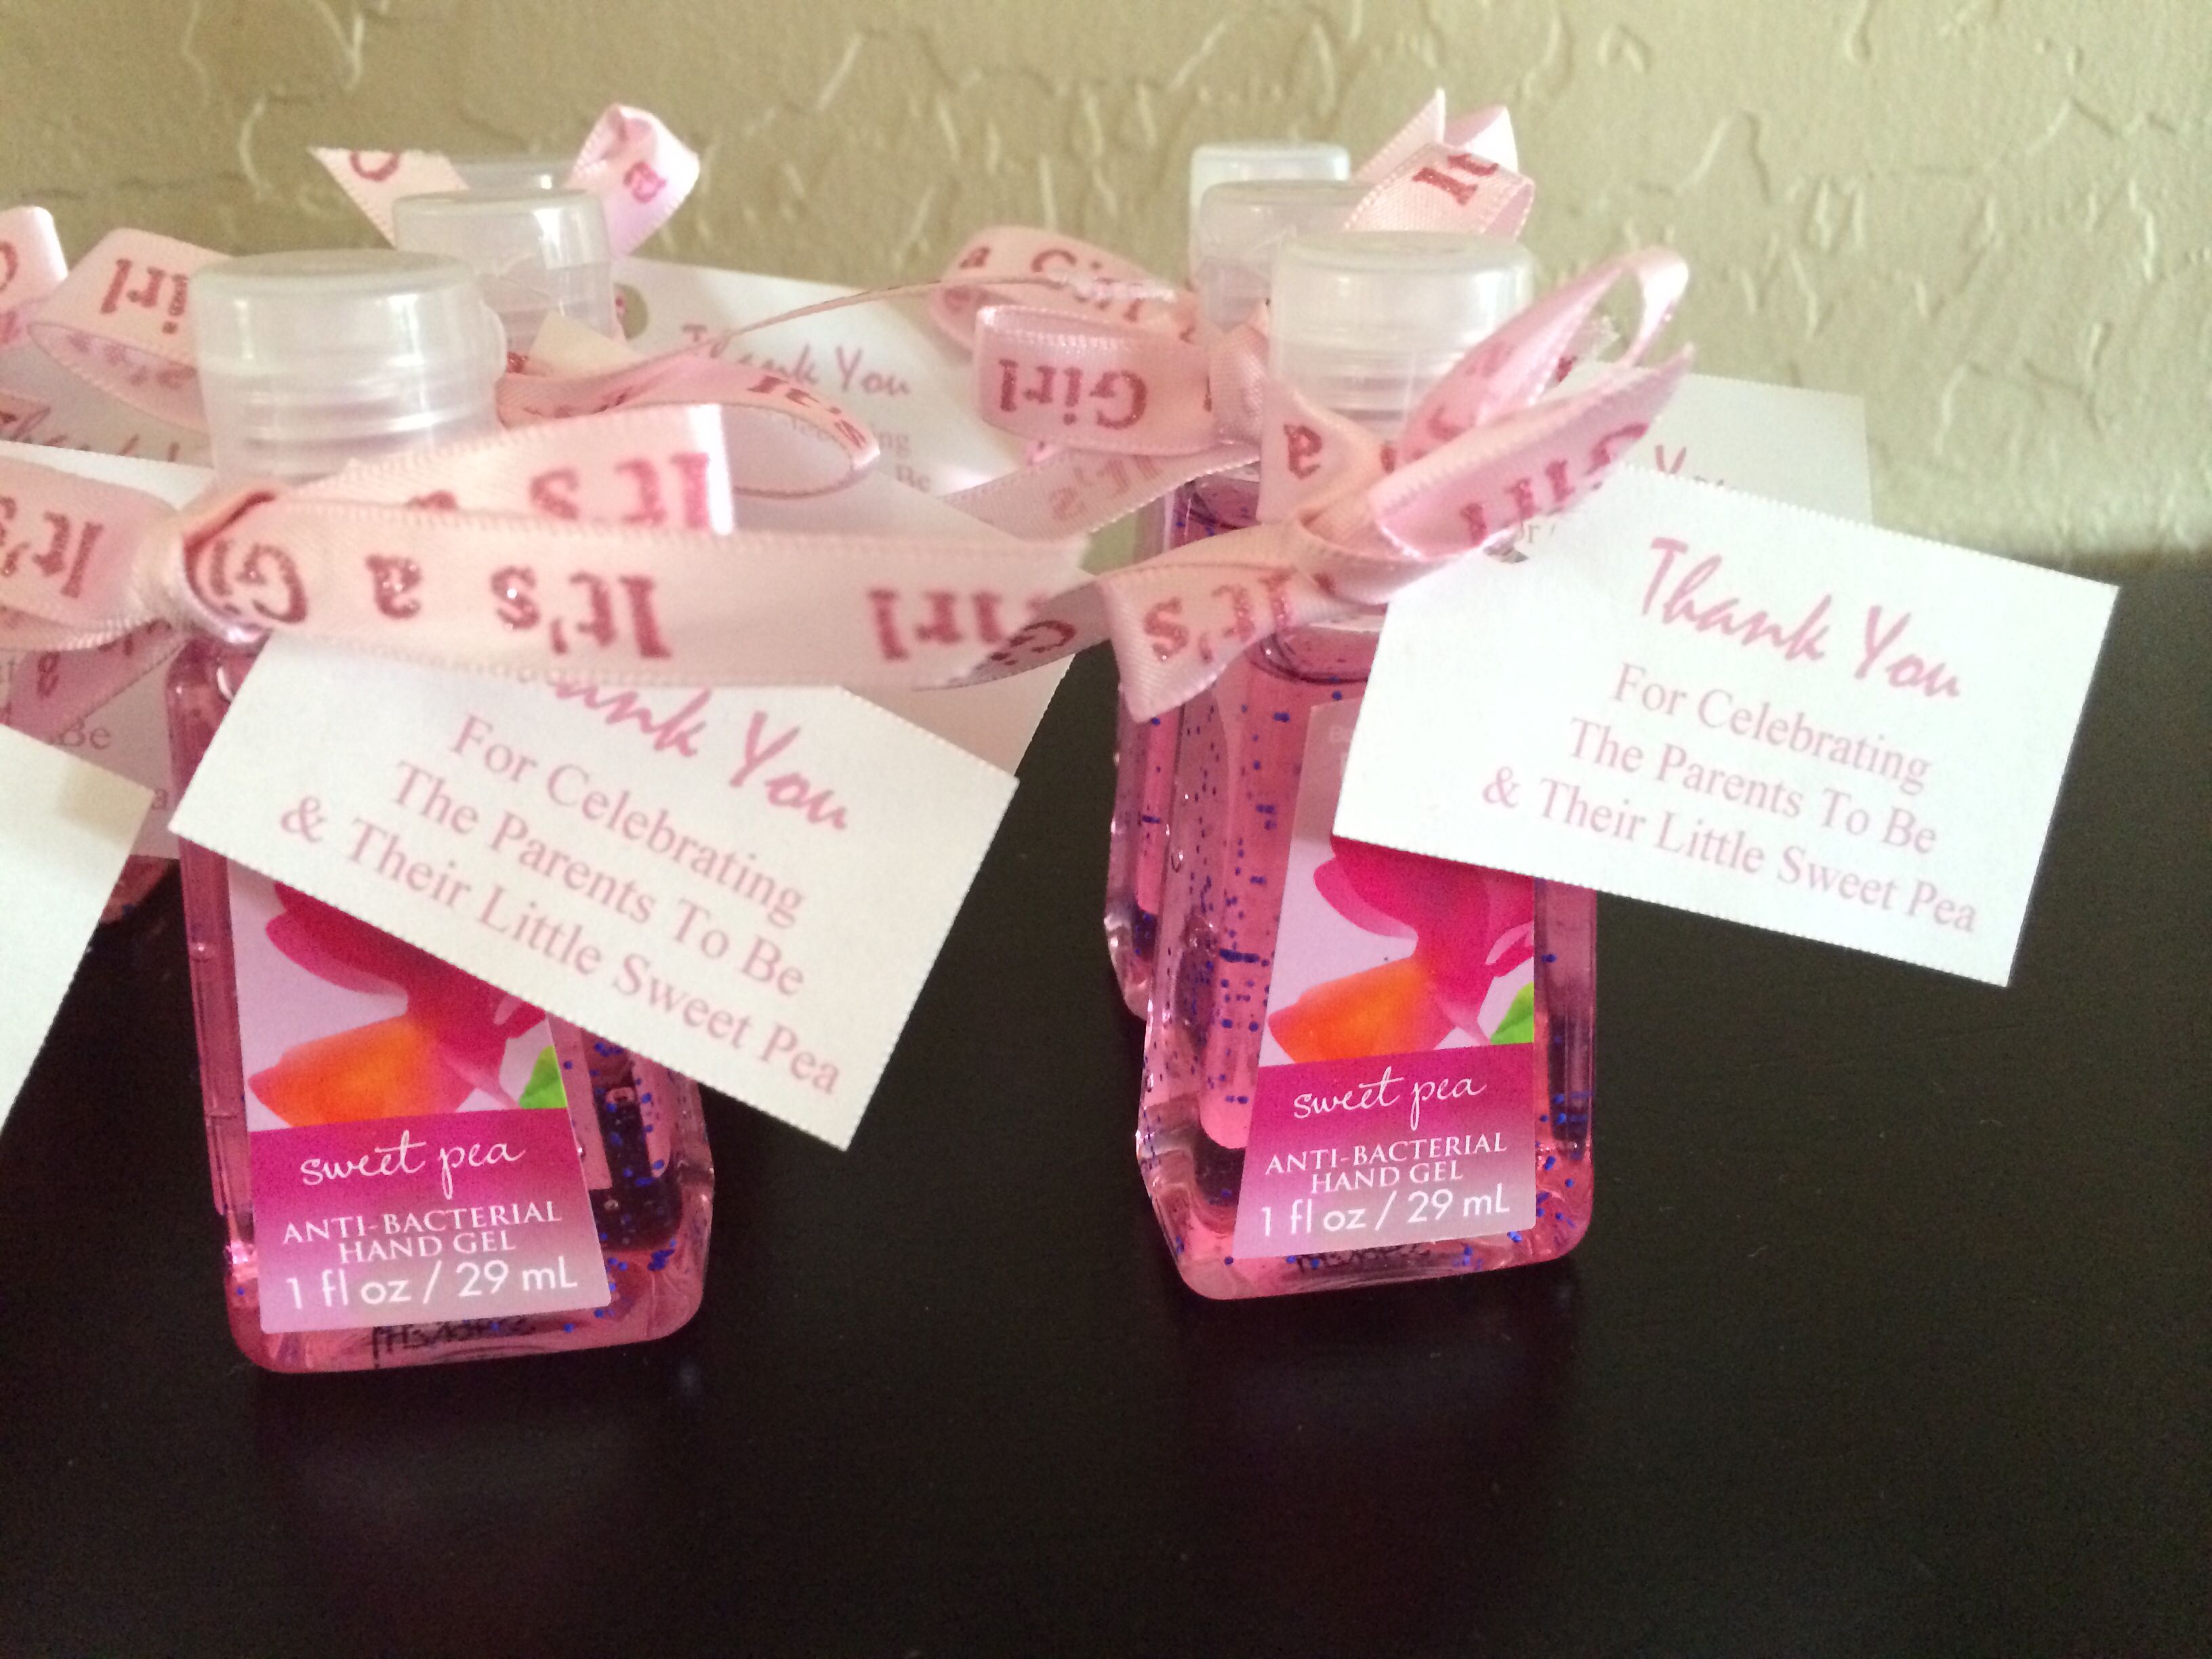 Baby Shower Favors Cute Hand Sanitizer Something The Guests Will